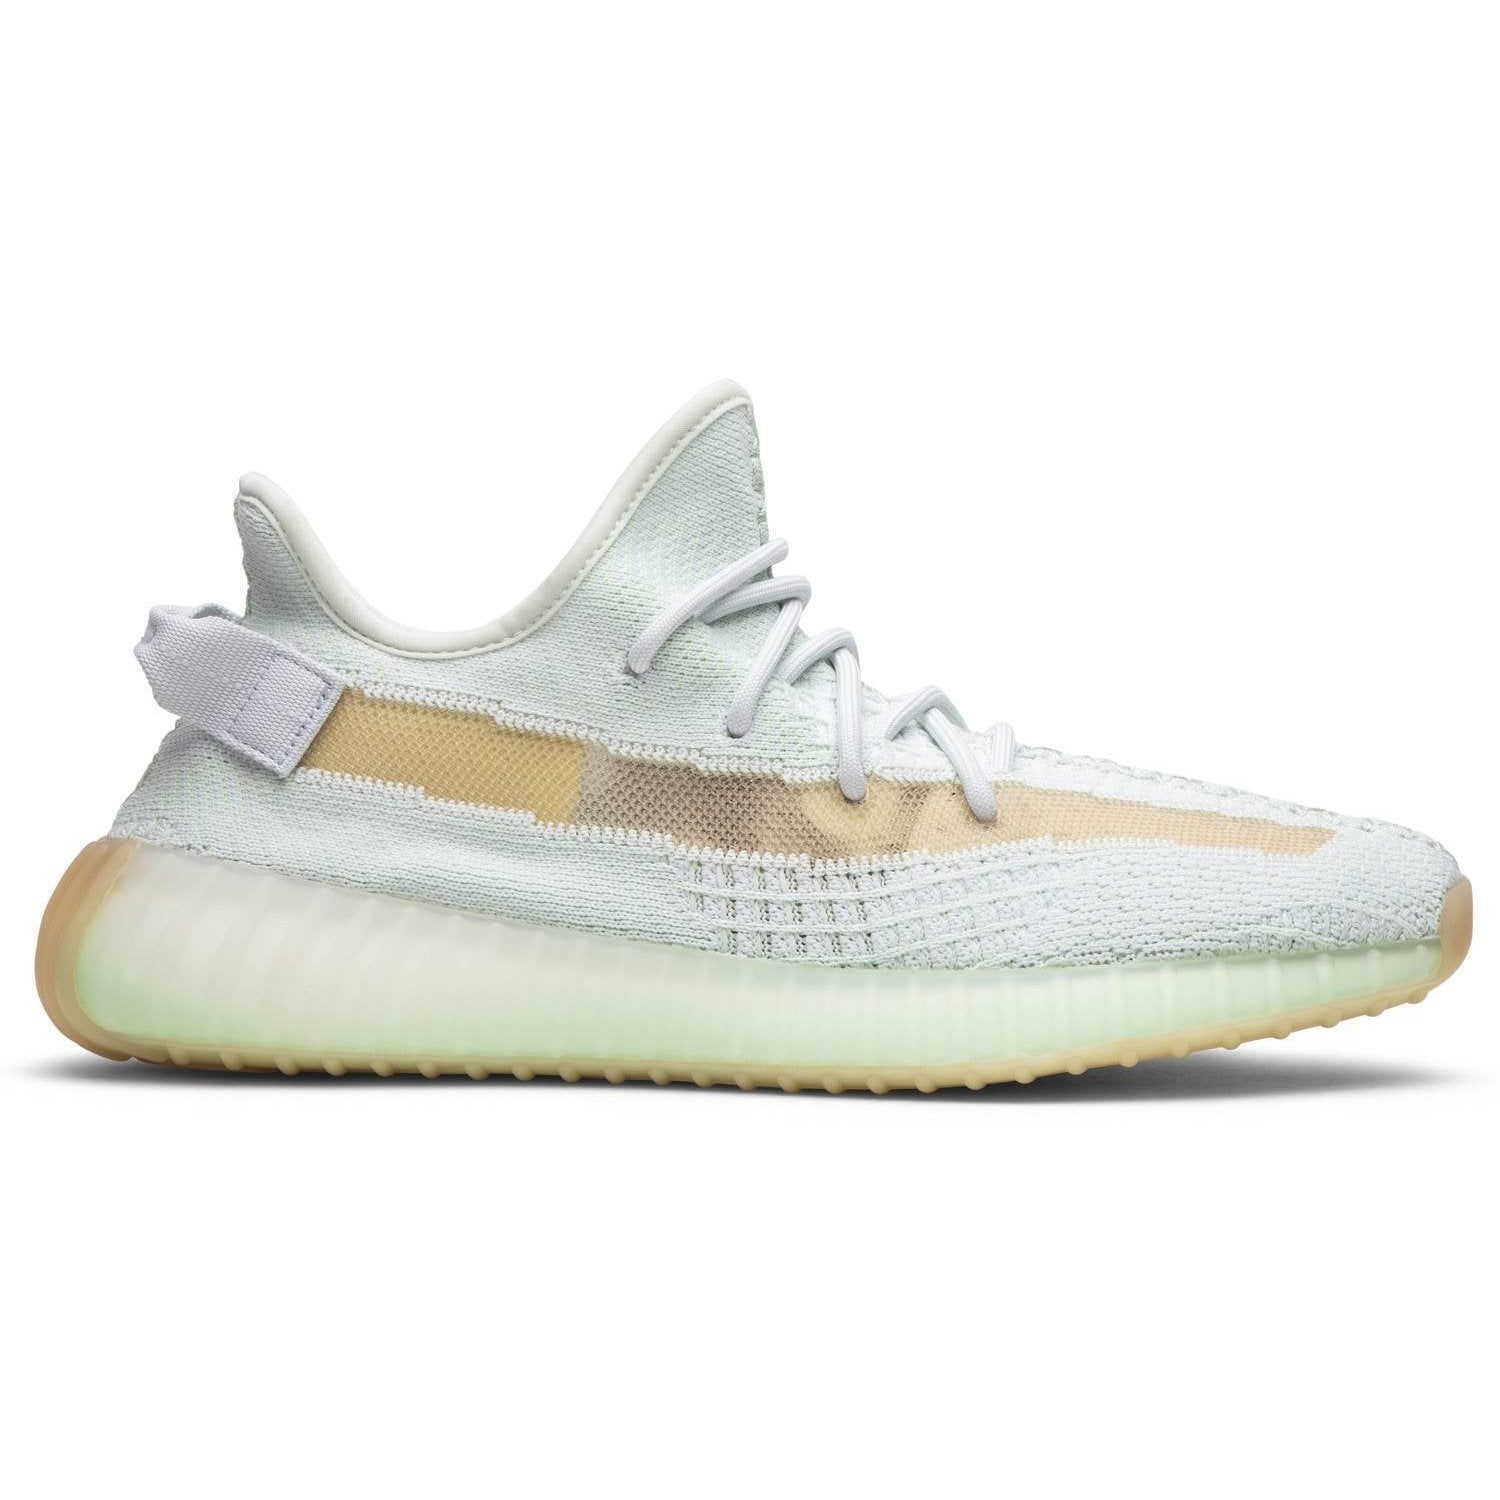 adidas Yeezy Boost 350 V2 'Hyperspace' - After Burn